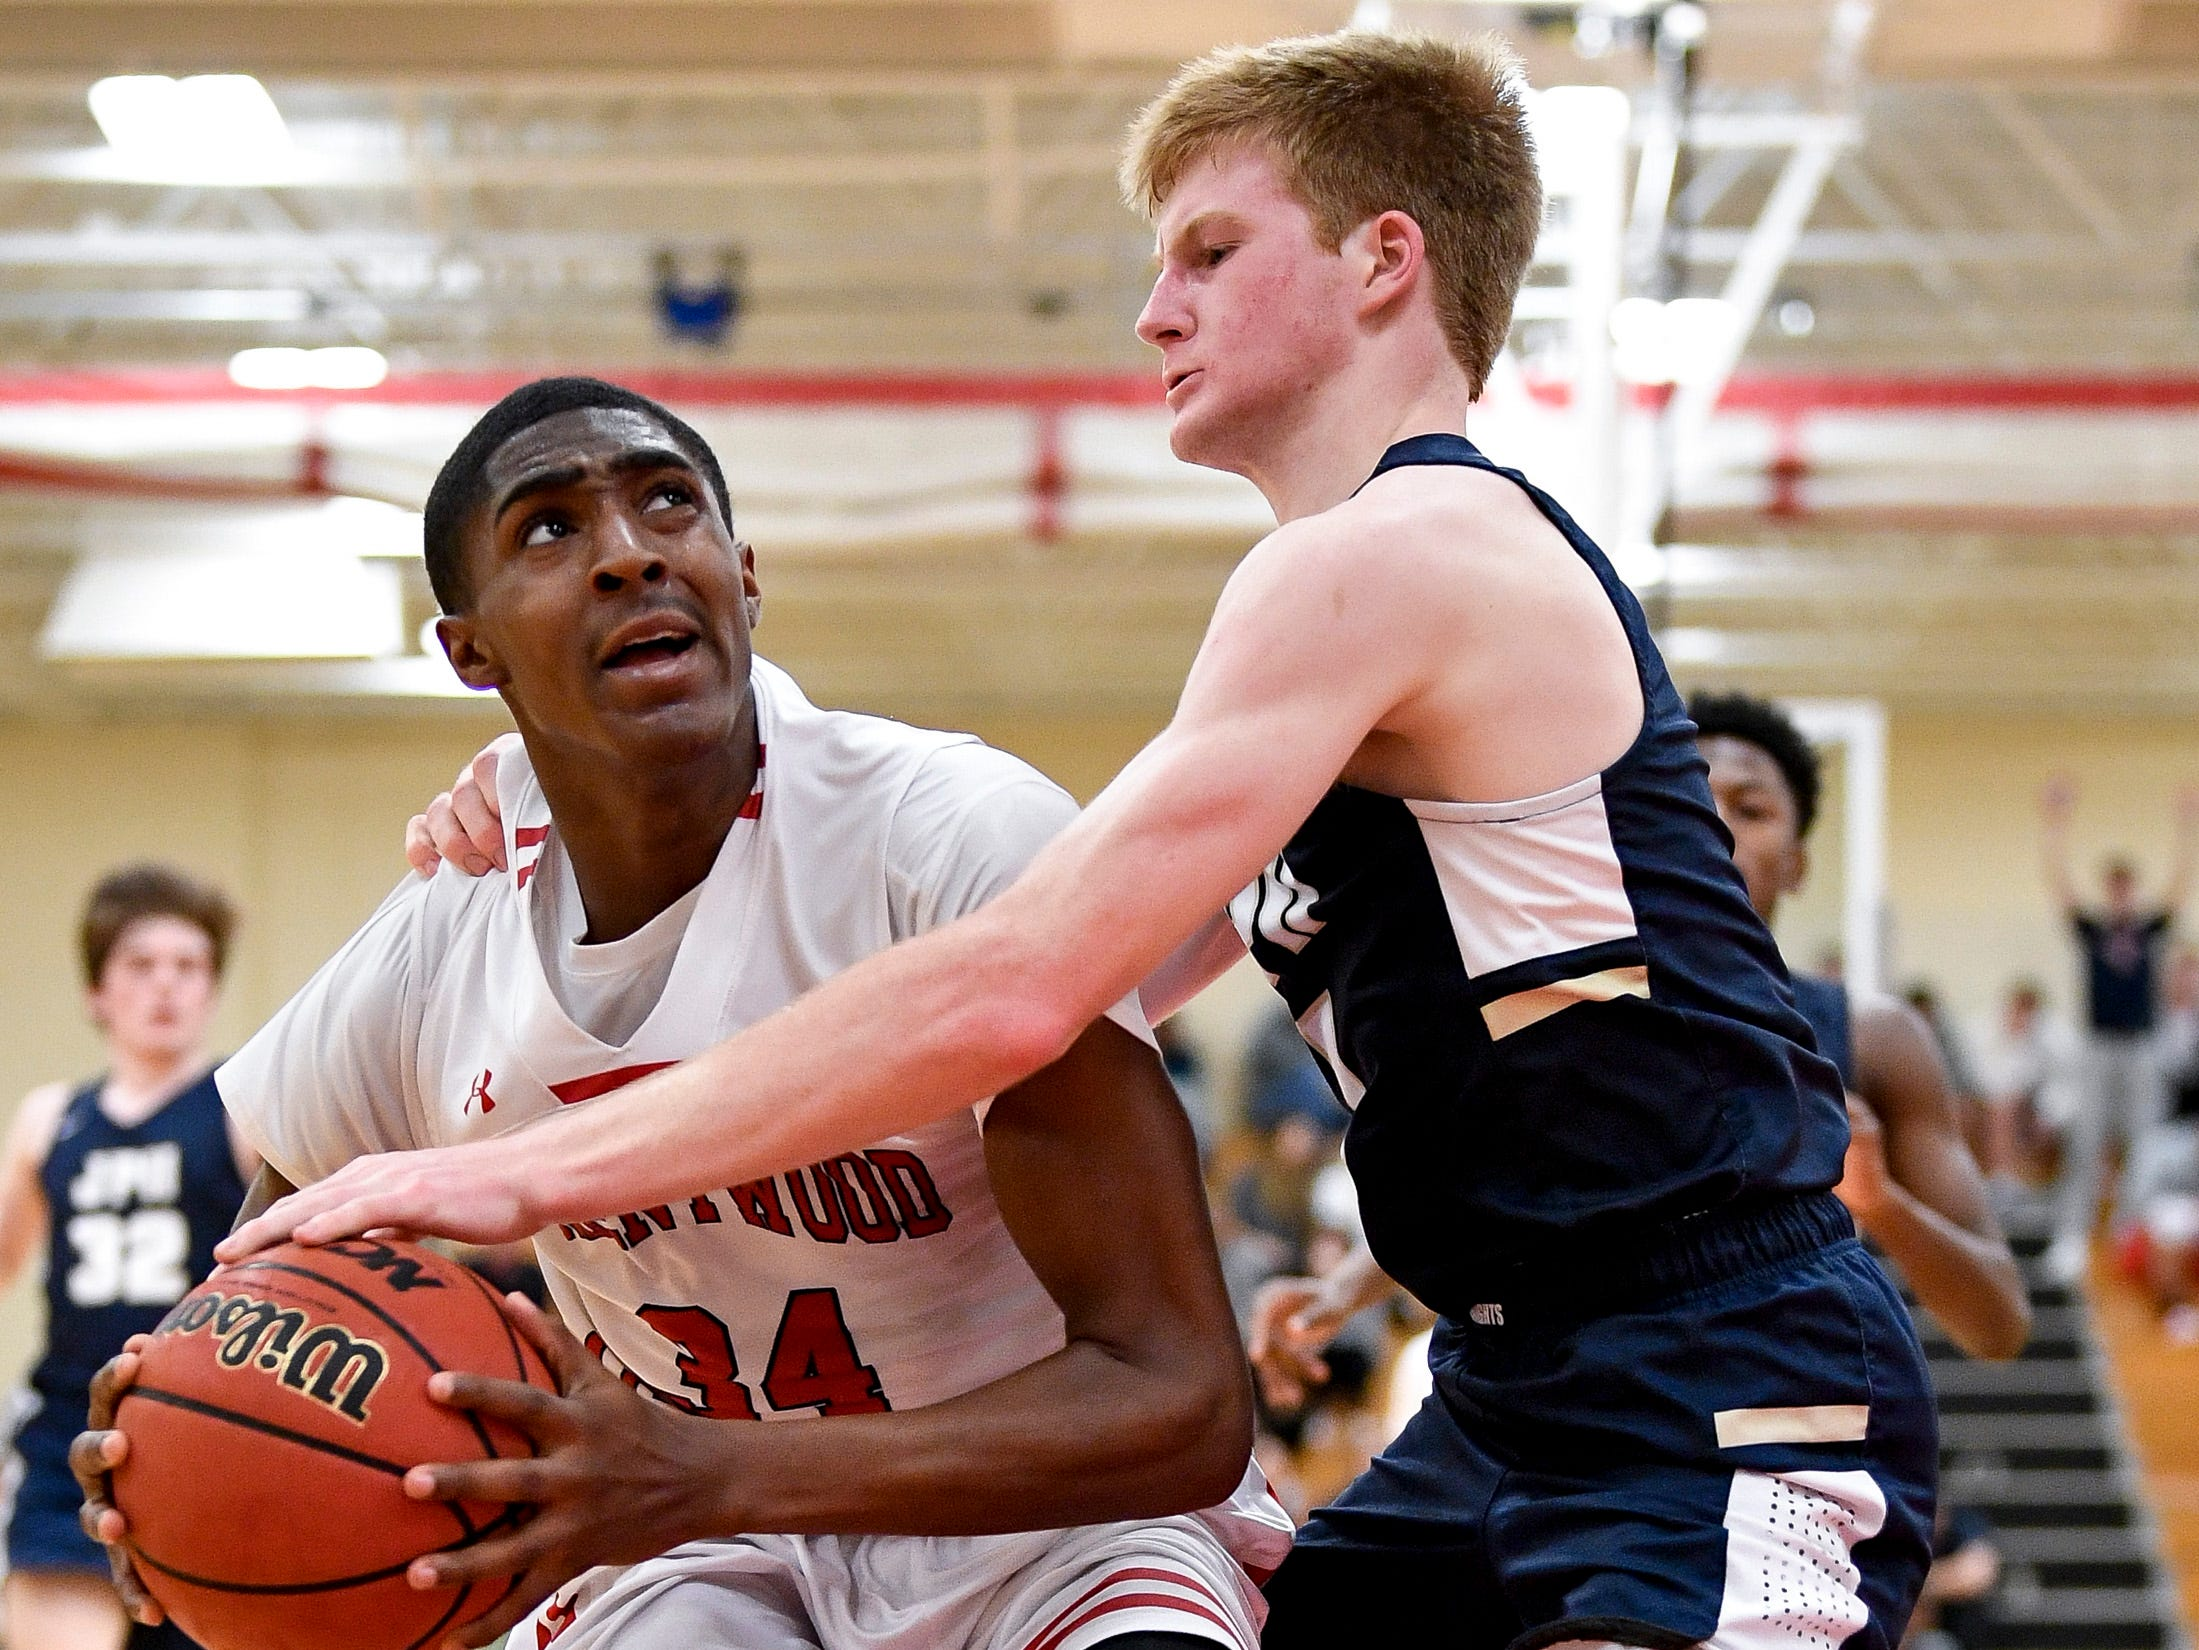 Brentwood Academy's Randy Brady (34) is fouled by Pope John Paul II's Michael Martini (1) during the second half at Brentwood Academy in Brentwood, Tenn., Friday, Jan. 4, 2019.